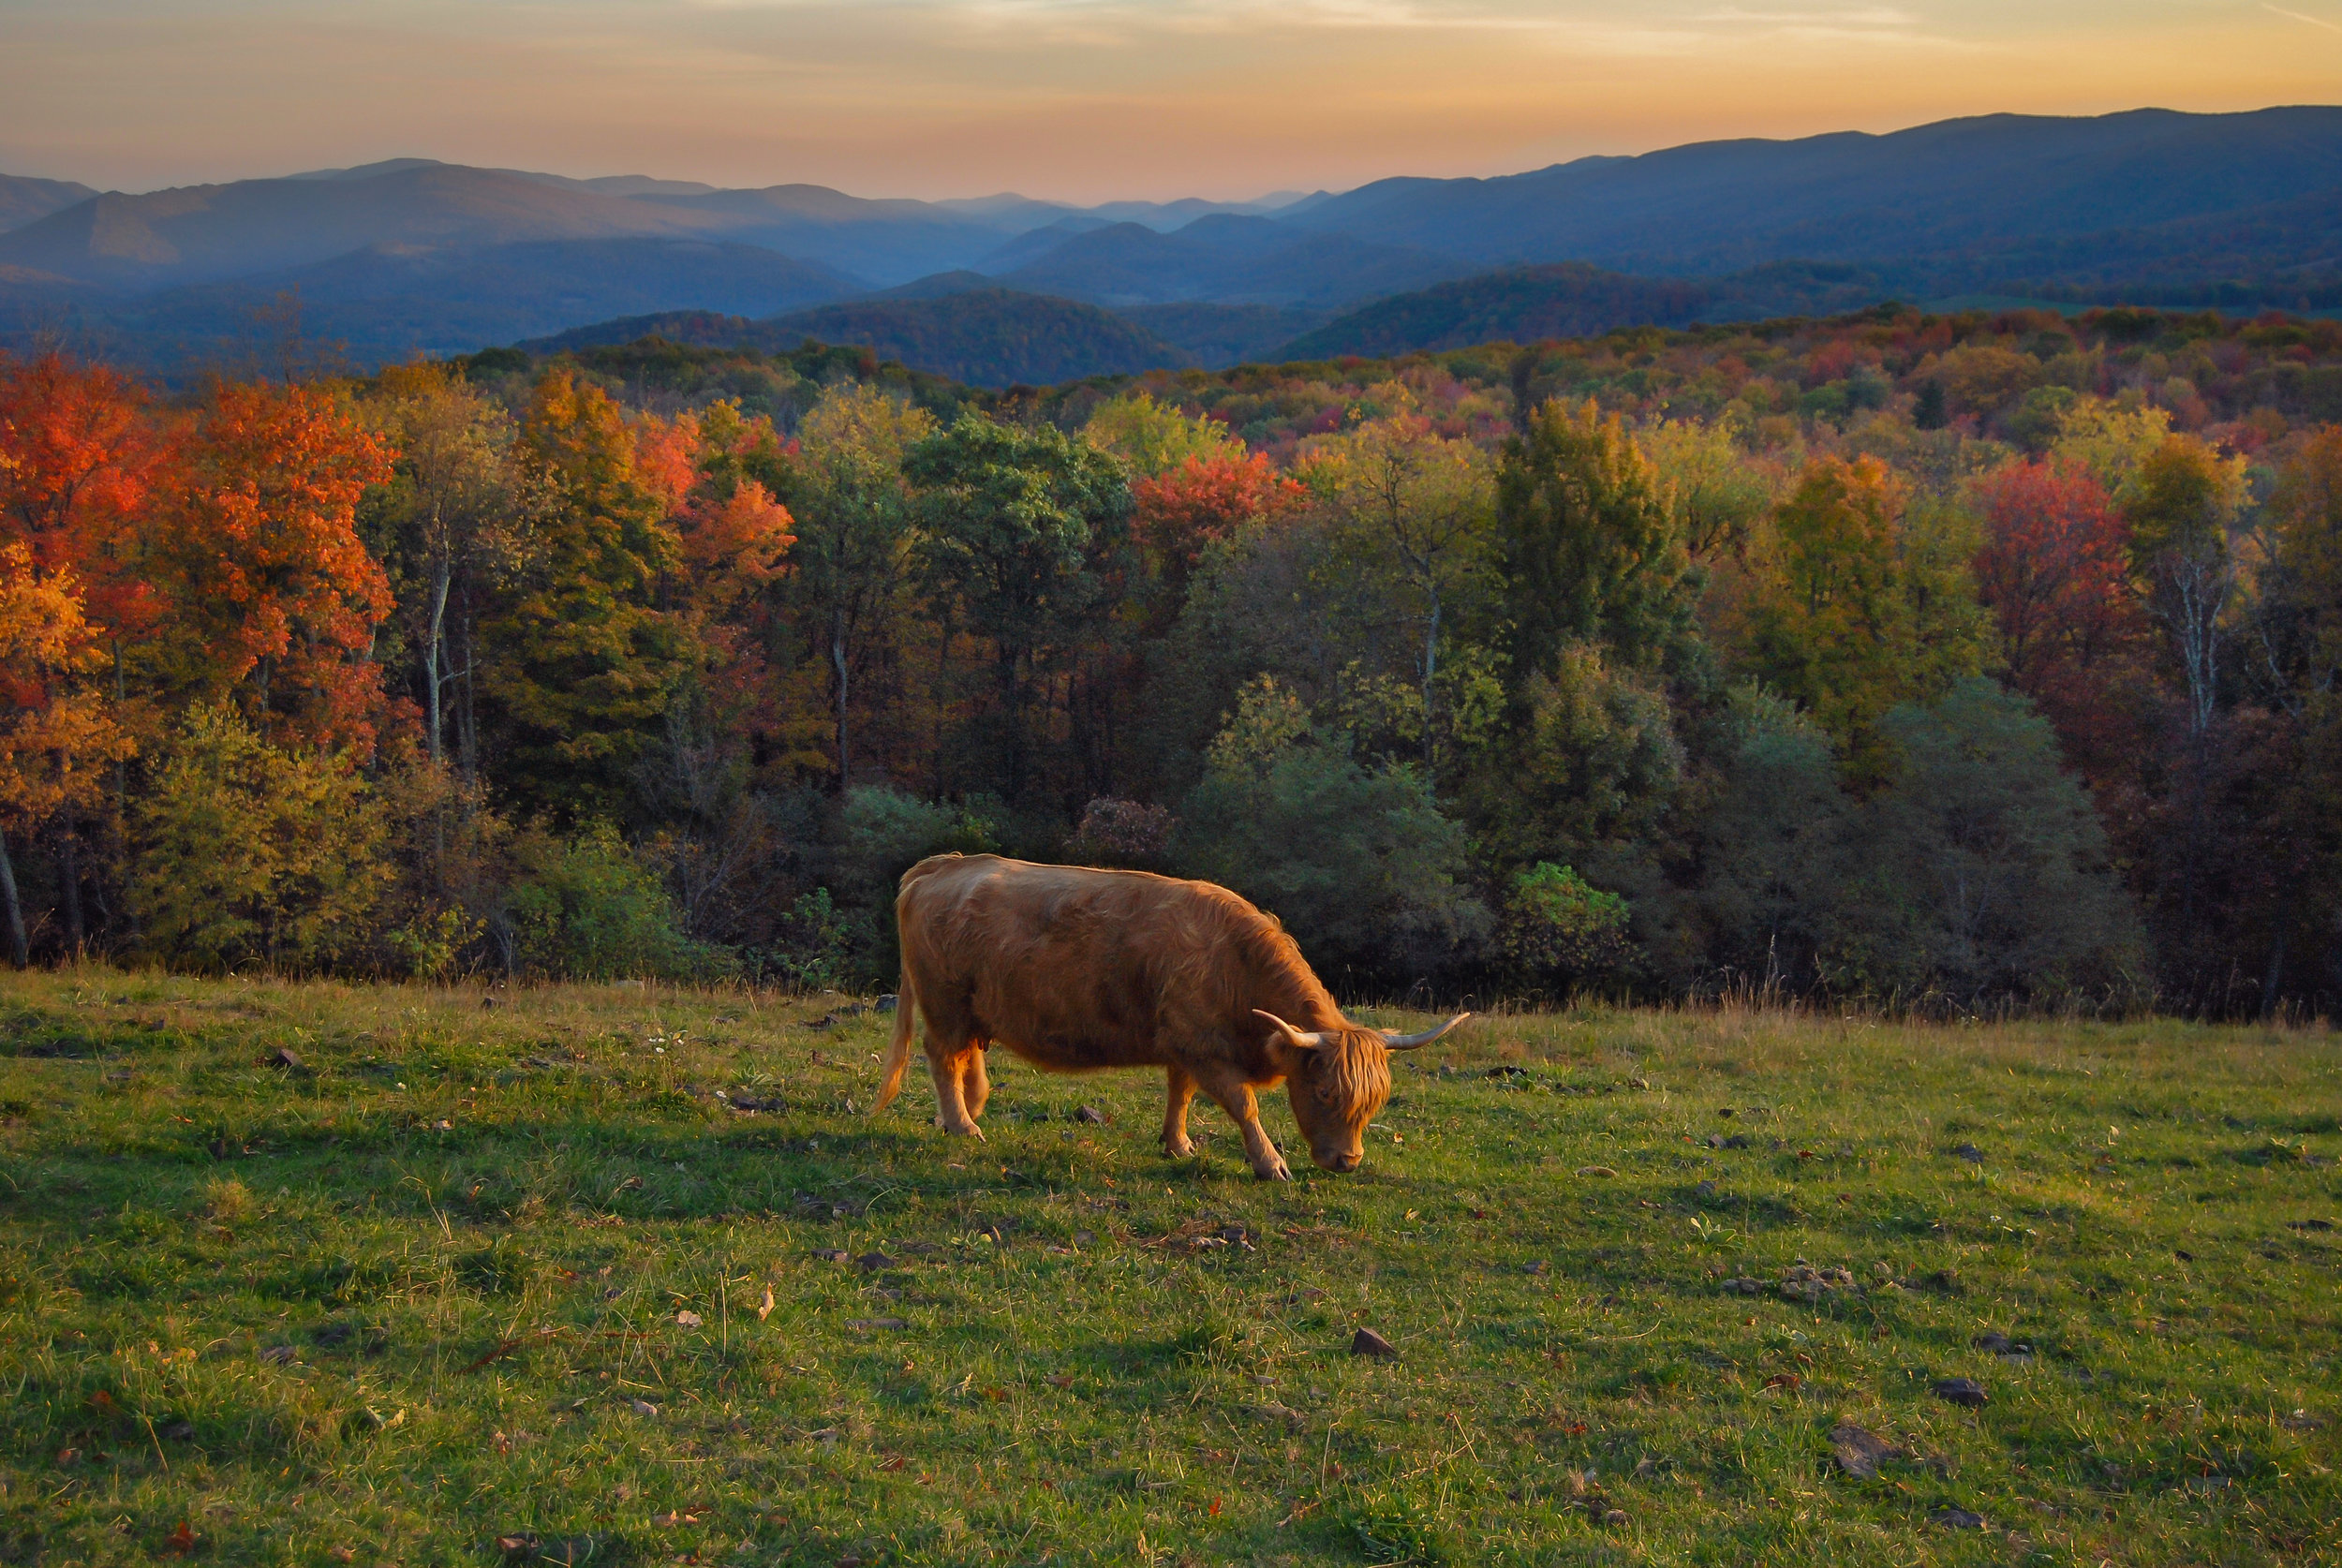 Scottish Highland Cattle-cattle-Allegheny Mountains-mountains-fall-Highland County-autumn-Virginia.jpg